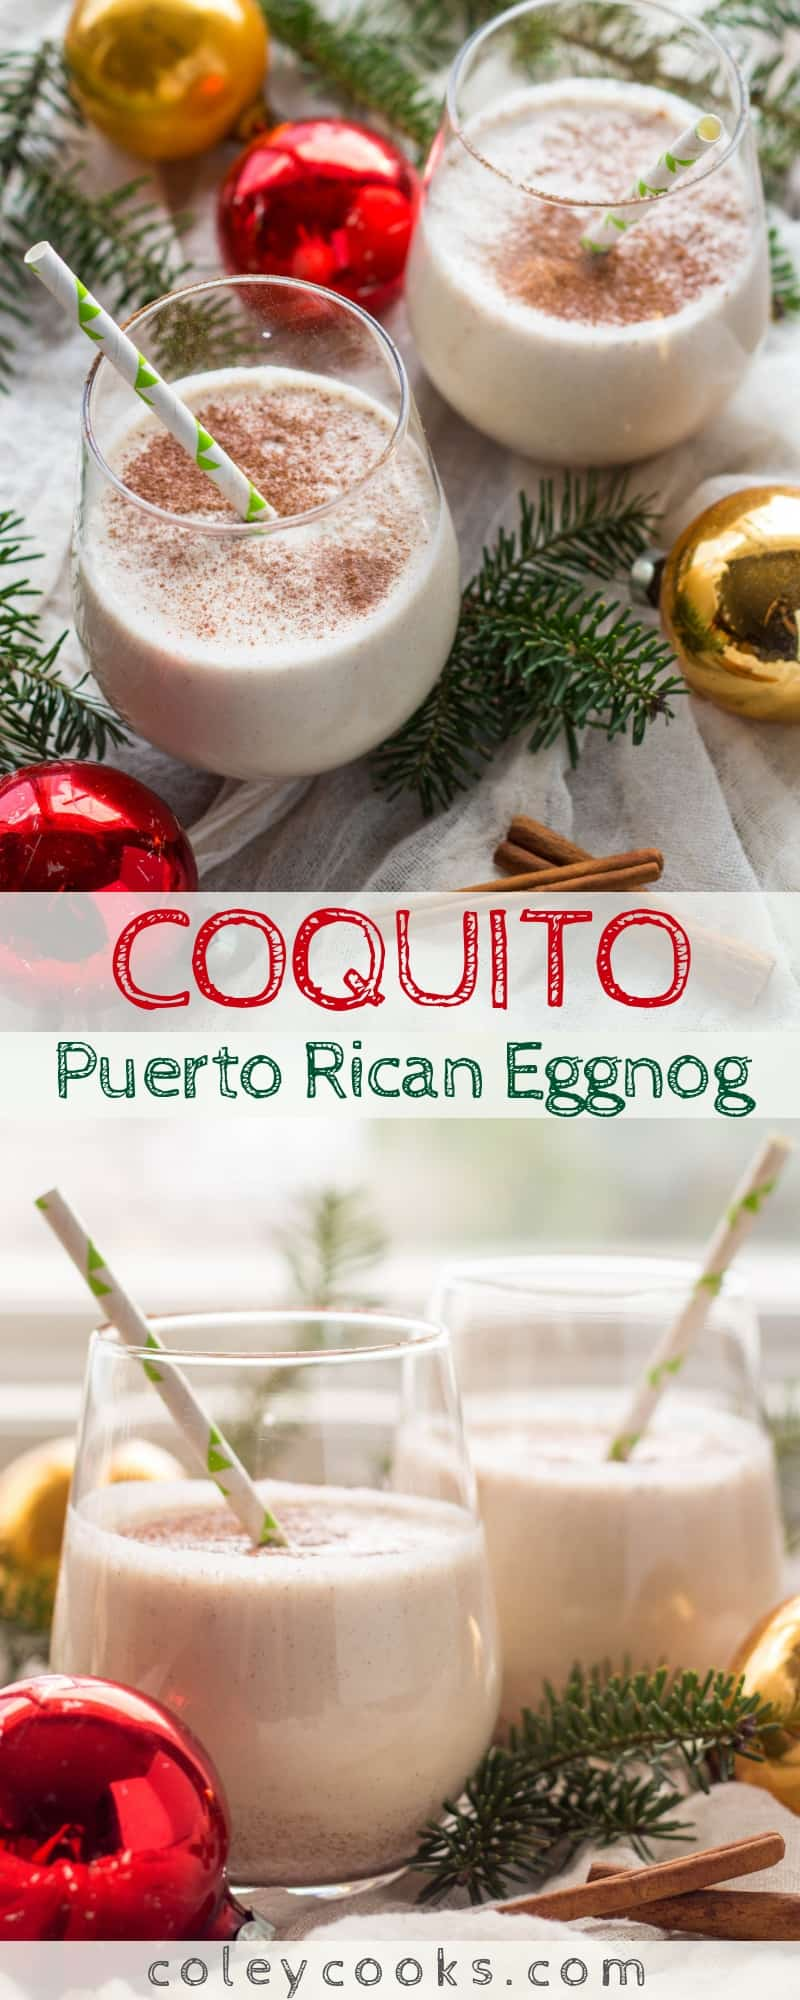 "COQUITO | Known as ""Puerto Rican Eggnog"" this strong, sweet and spiced coconut rum drink is my absolute favorite at Christmas! 